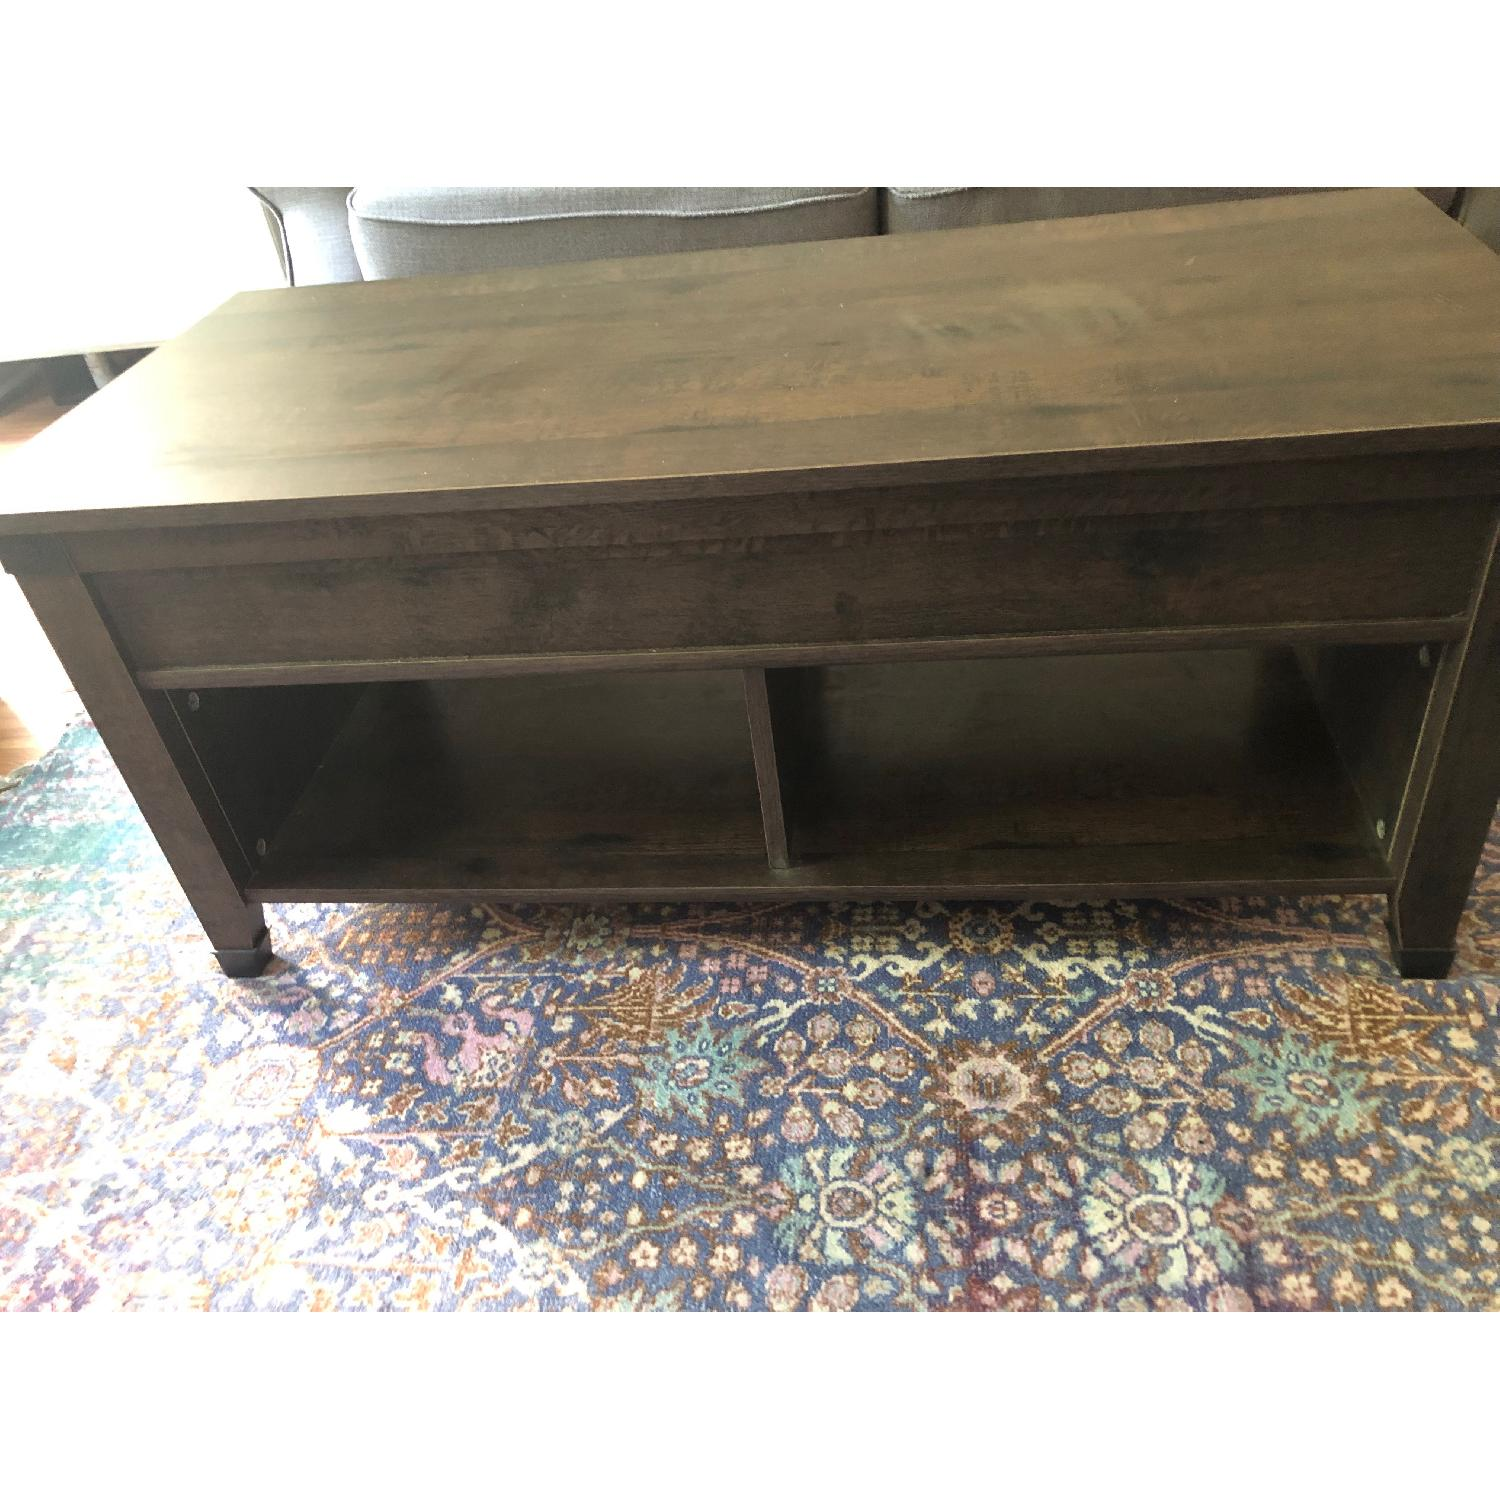 Sauder Carson Forge Lift Top Coffee Table - image-3